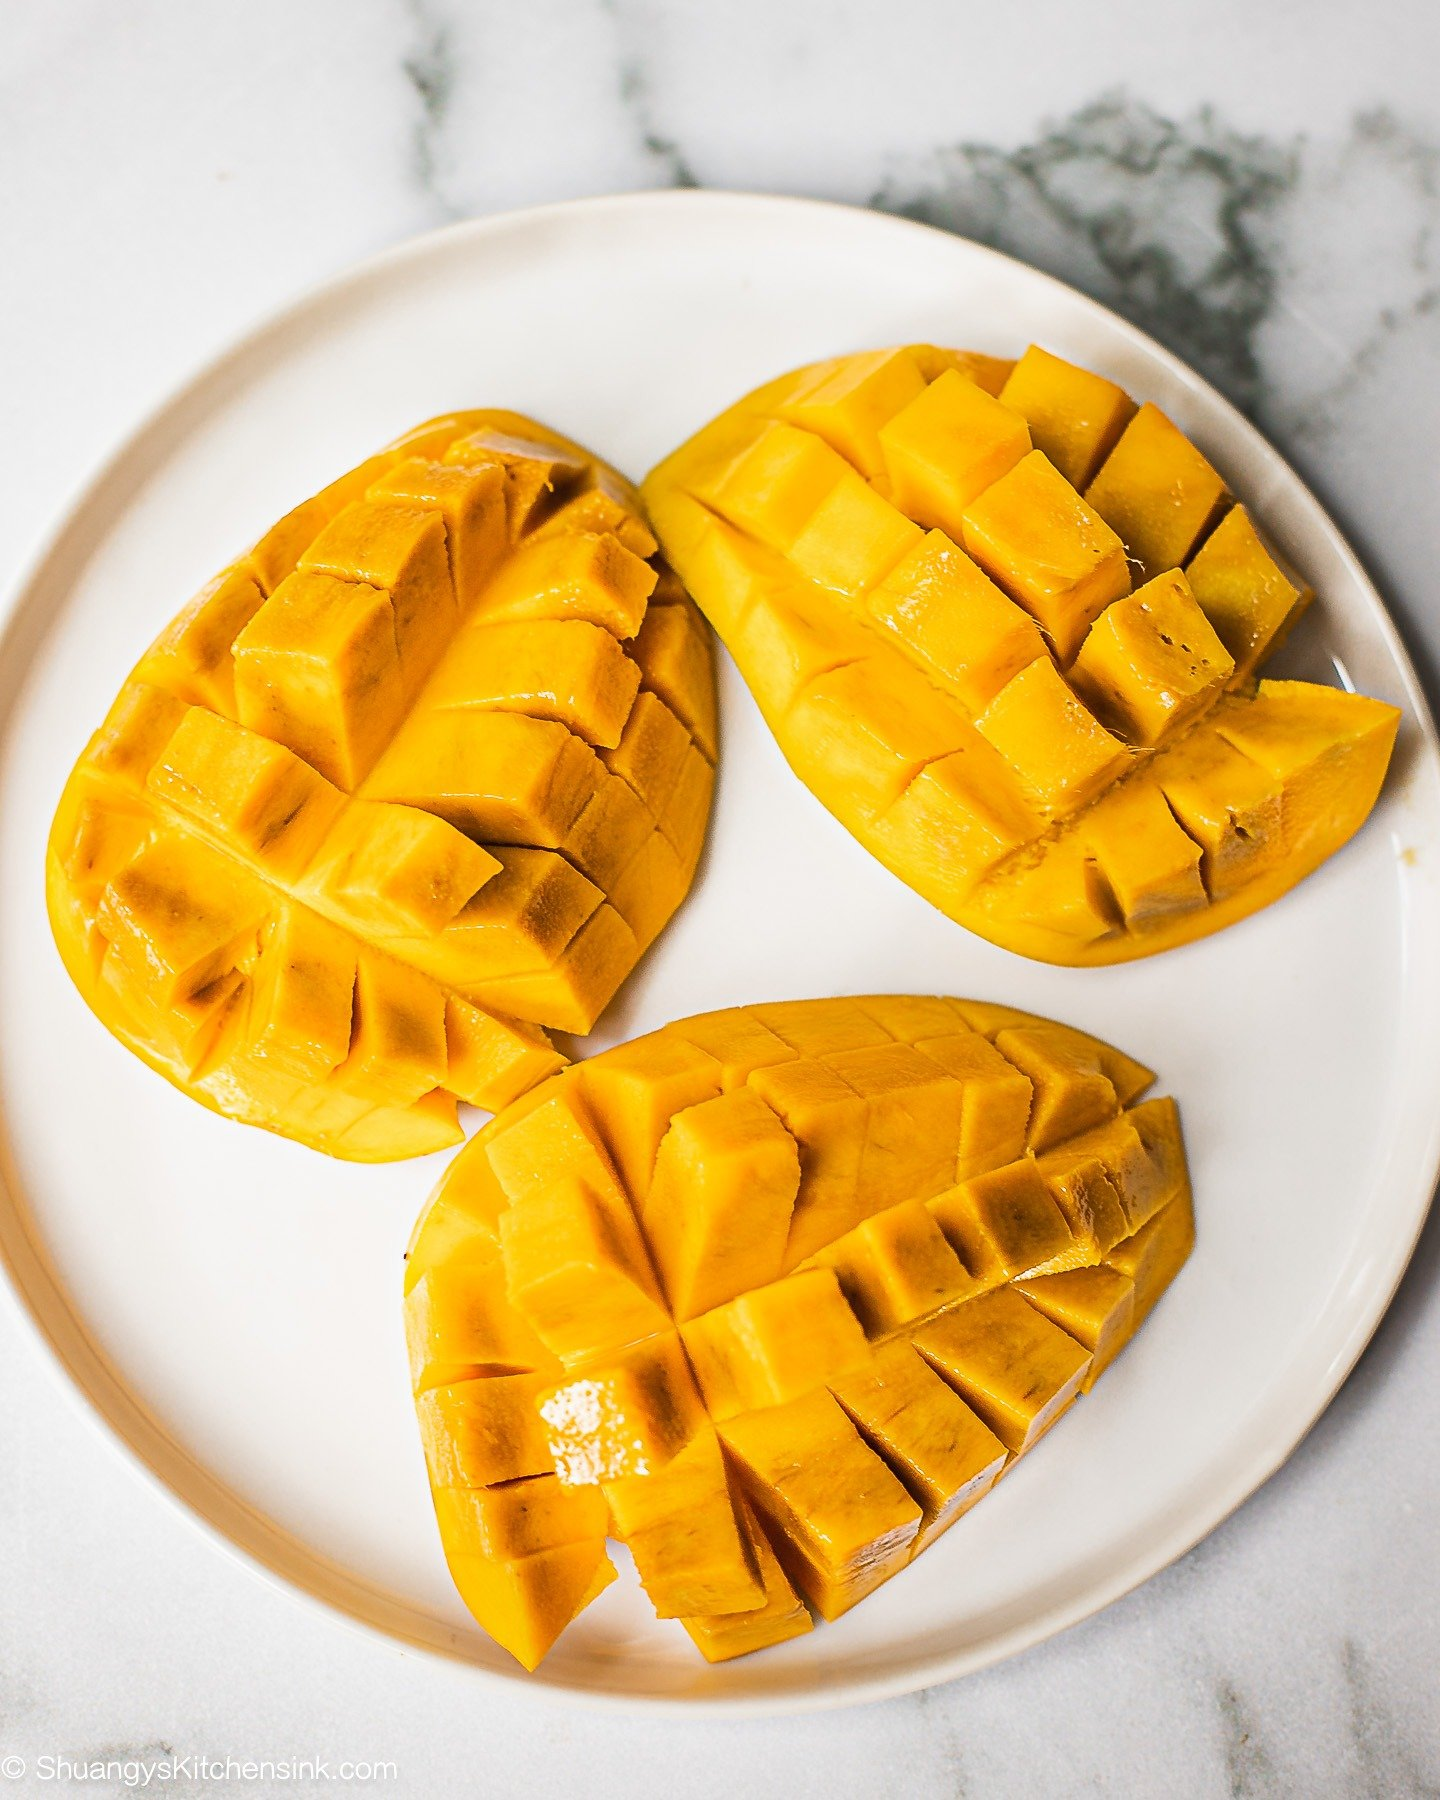 A plate of mango skinned and diced.